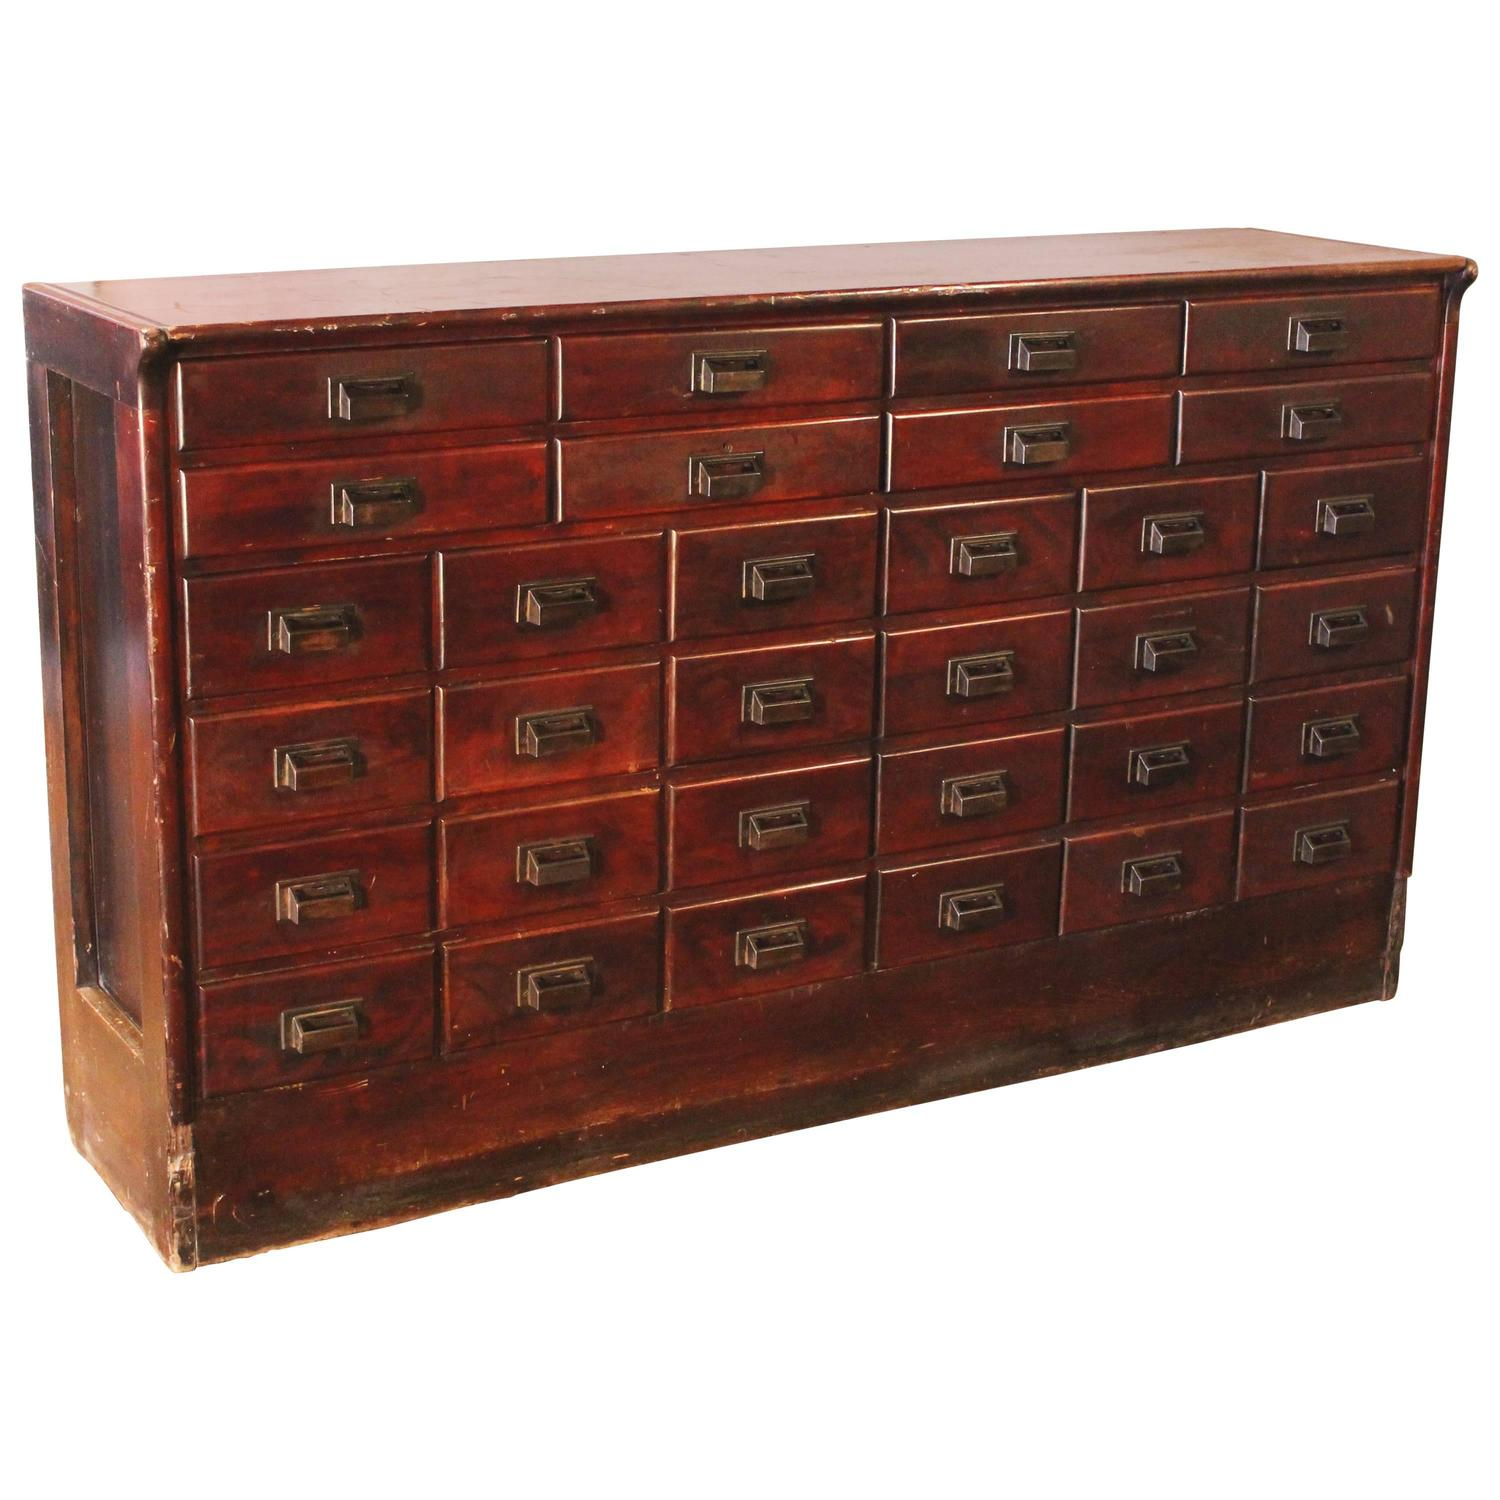 Antique Storage Cabinets Antique Apothecary Cabinets For Sale In Usa 1stdibs